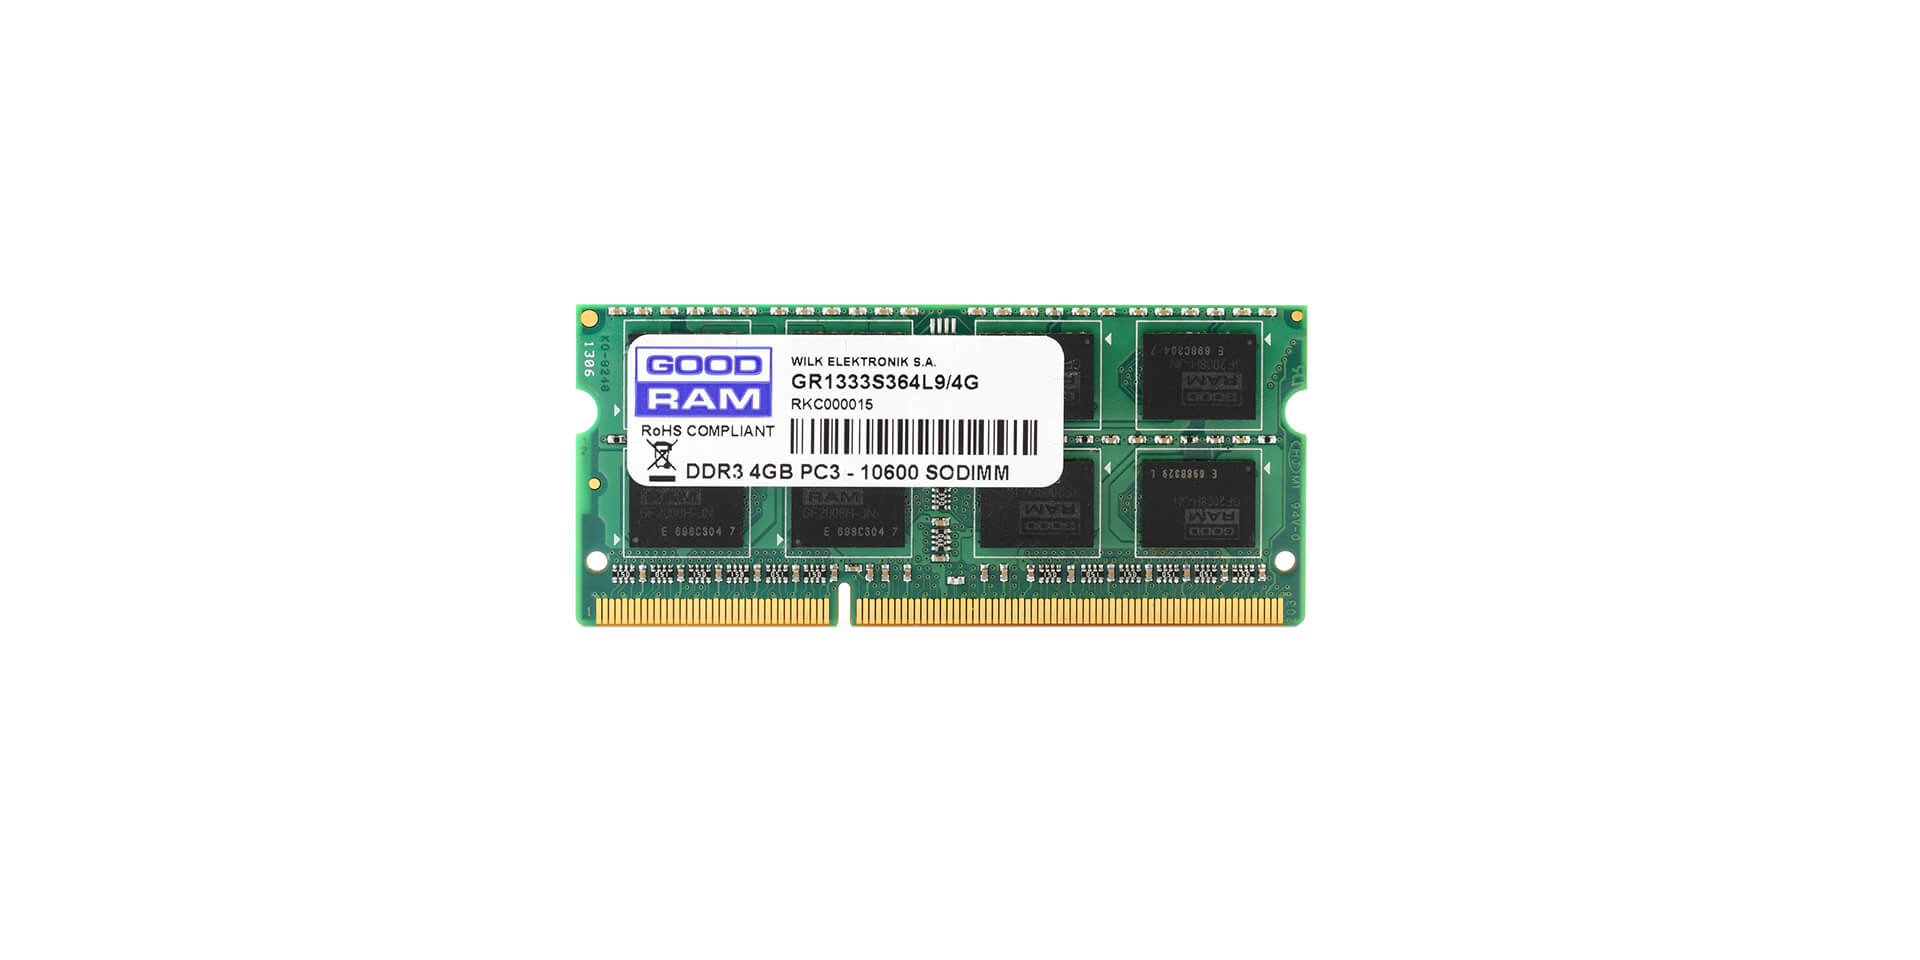 GOODRAM GR1600S3V64L11/8 8192 MB DDR3 1600MHZ CL11 SODIMM NOWA DO LAPTOPA